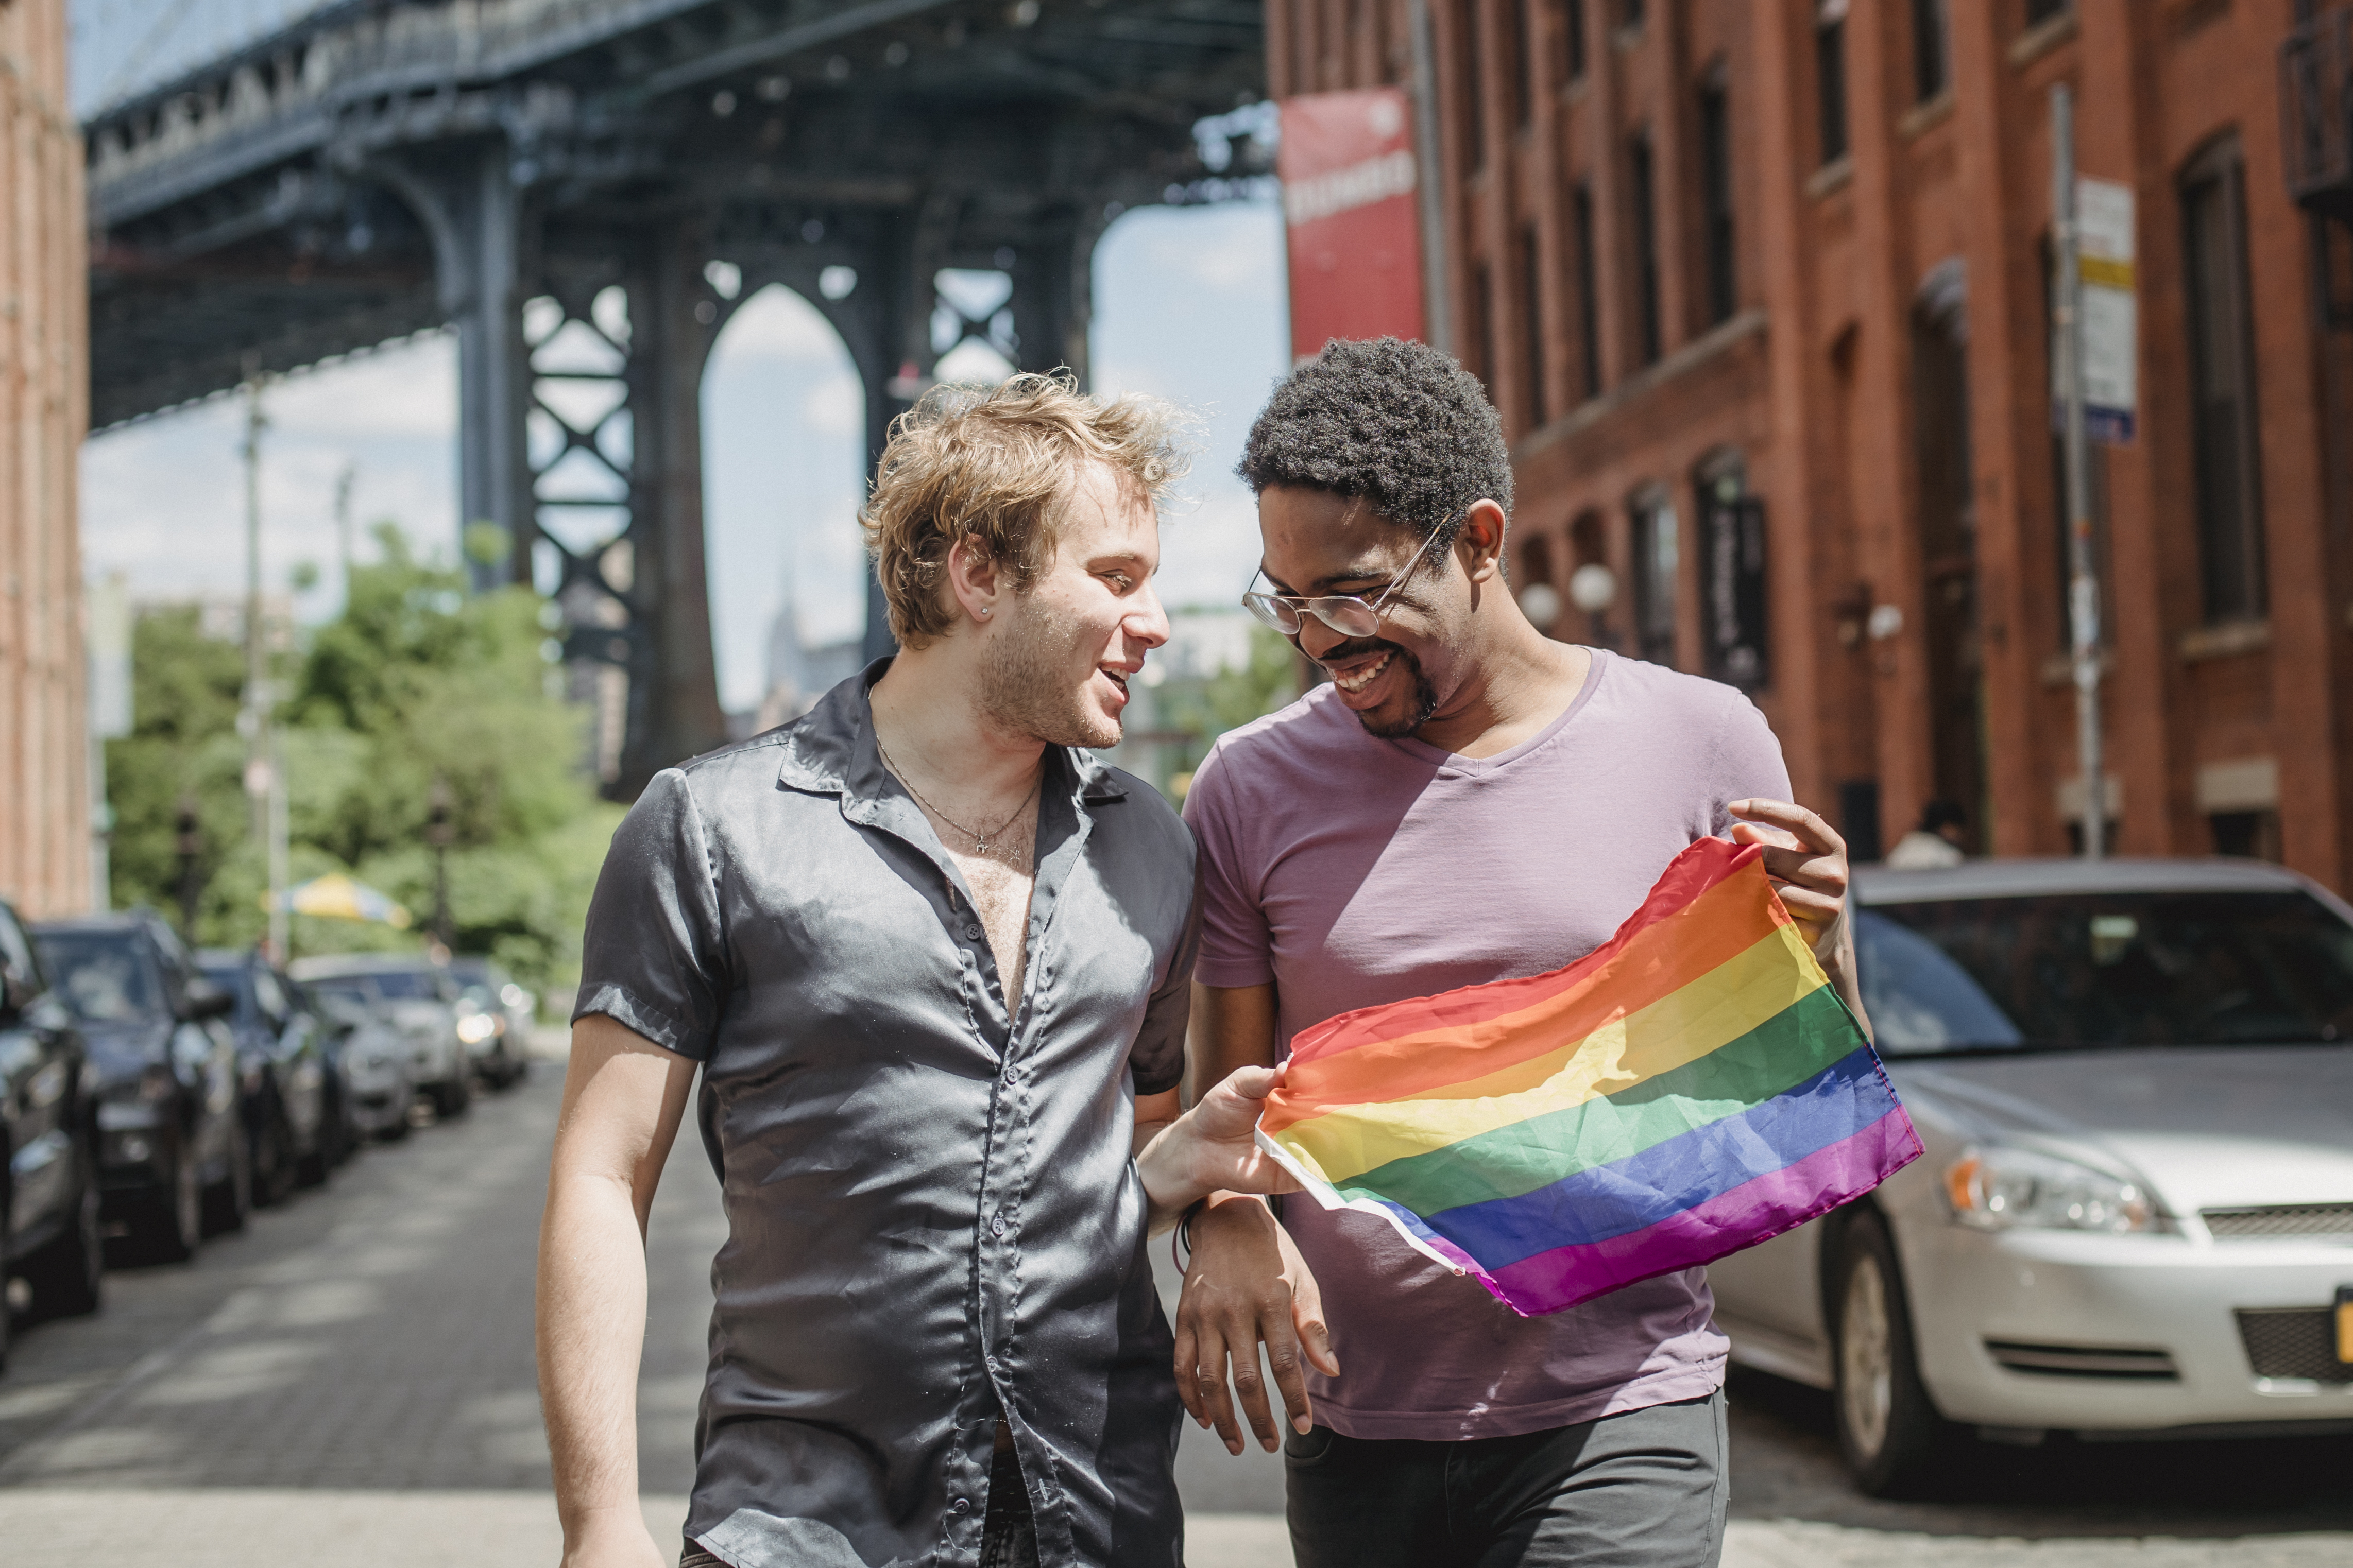 happy-couple-holding-a-lgbt-flag-4658052